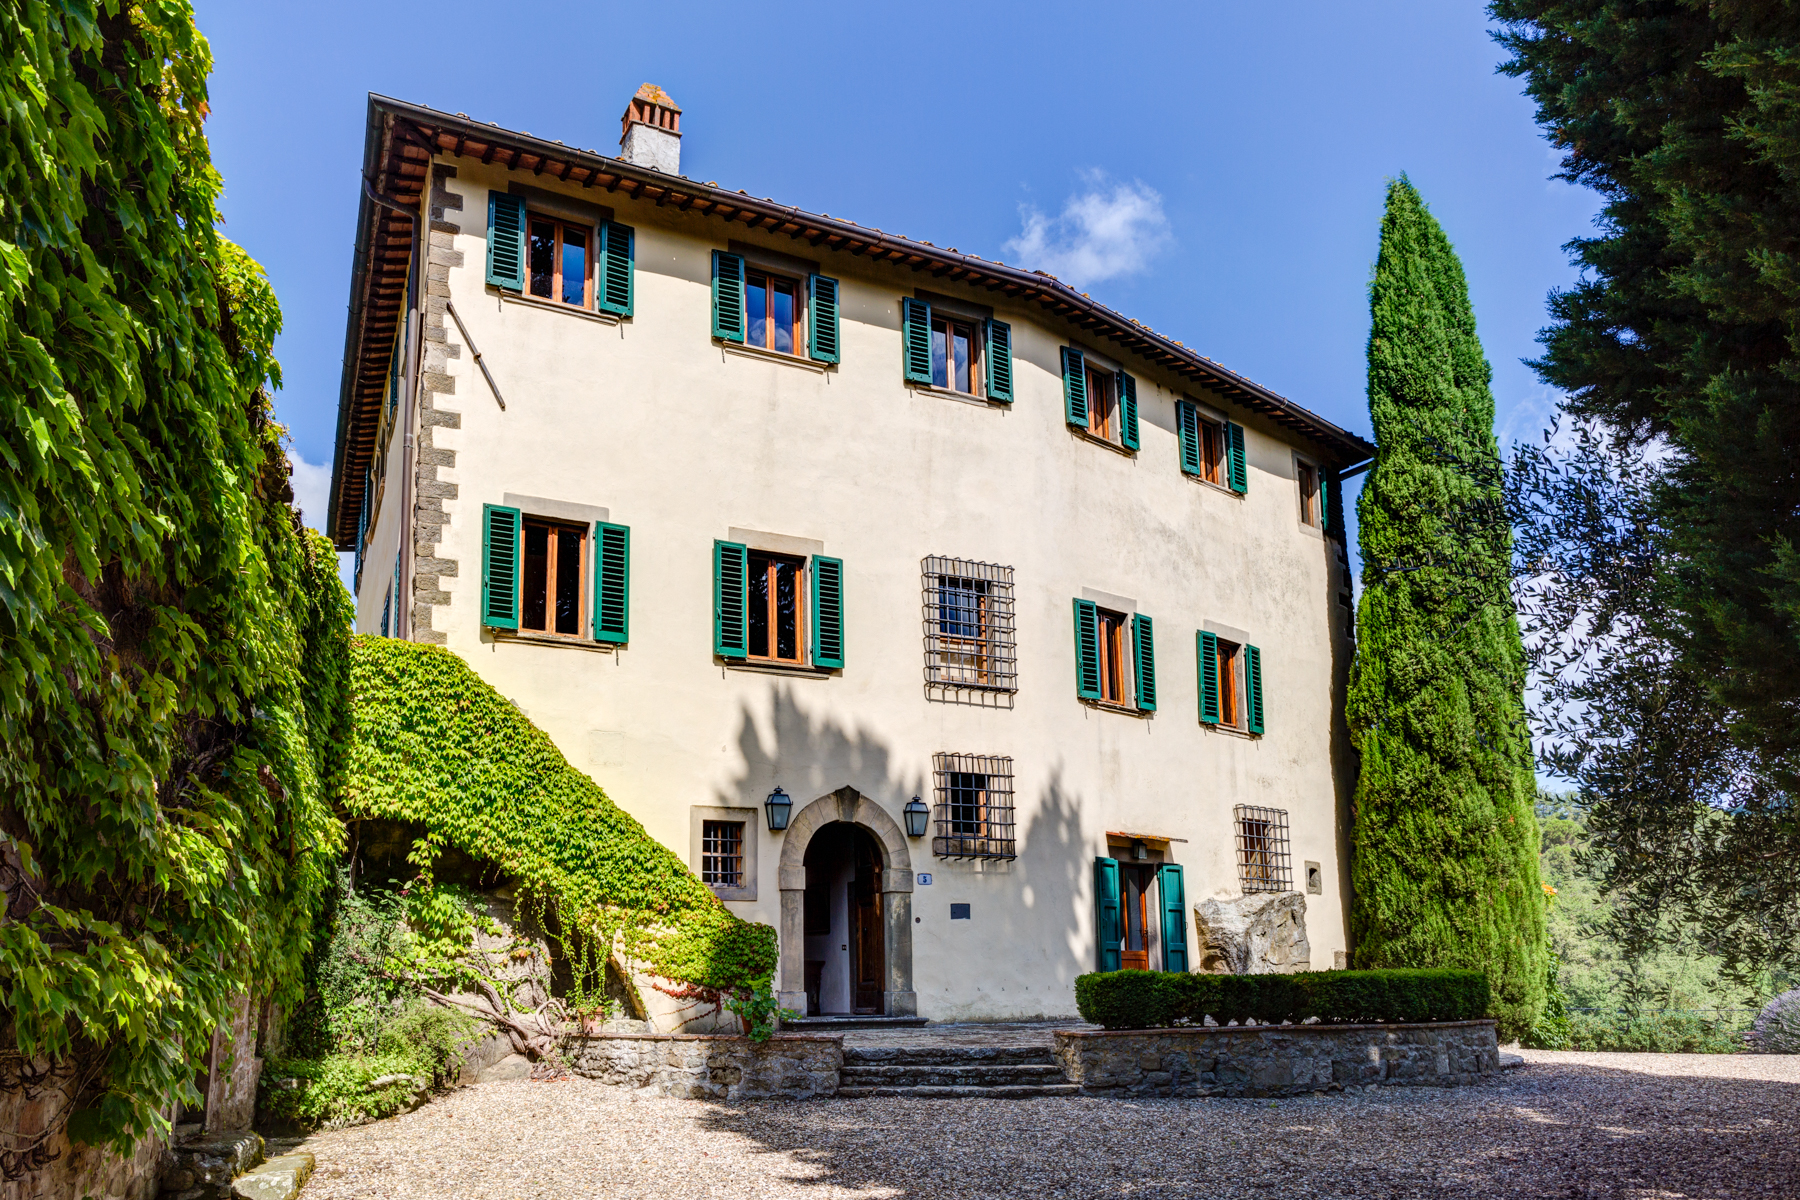 Single Family Home for Sale at Amazing property in Chianti loc. Le Convertoie Greve In Chianti, 50022 Italy